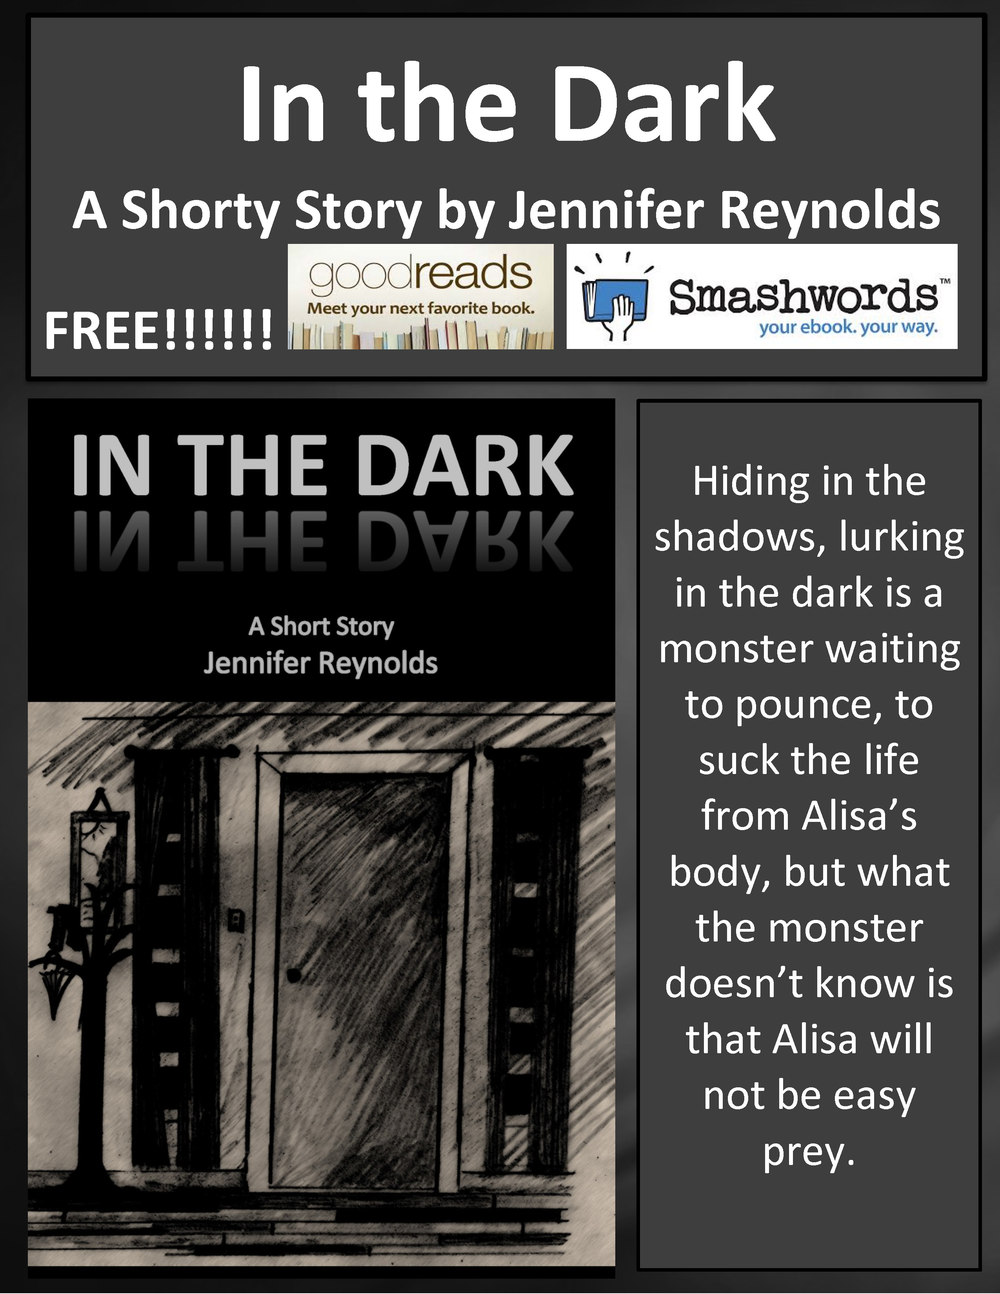 Want something short and creepy to read this Halloween? Download my new, FREE short story, IN THE DARK, at Smashwords or read it on Goodreads.  https://www.smashwords.com/books/view/487854  https://www.goodreads.com/story/show/375597-in-the-dark